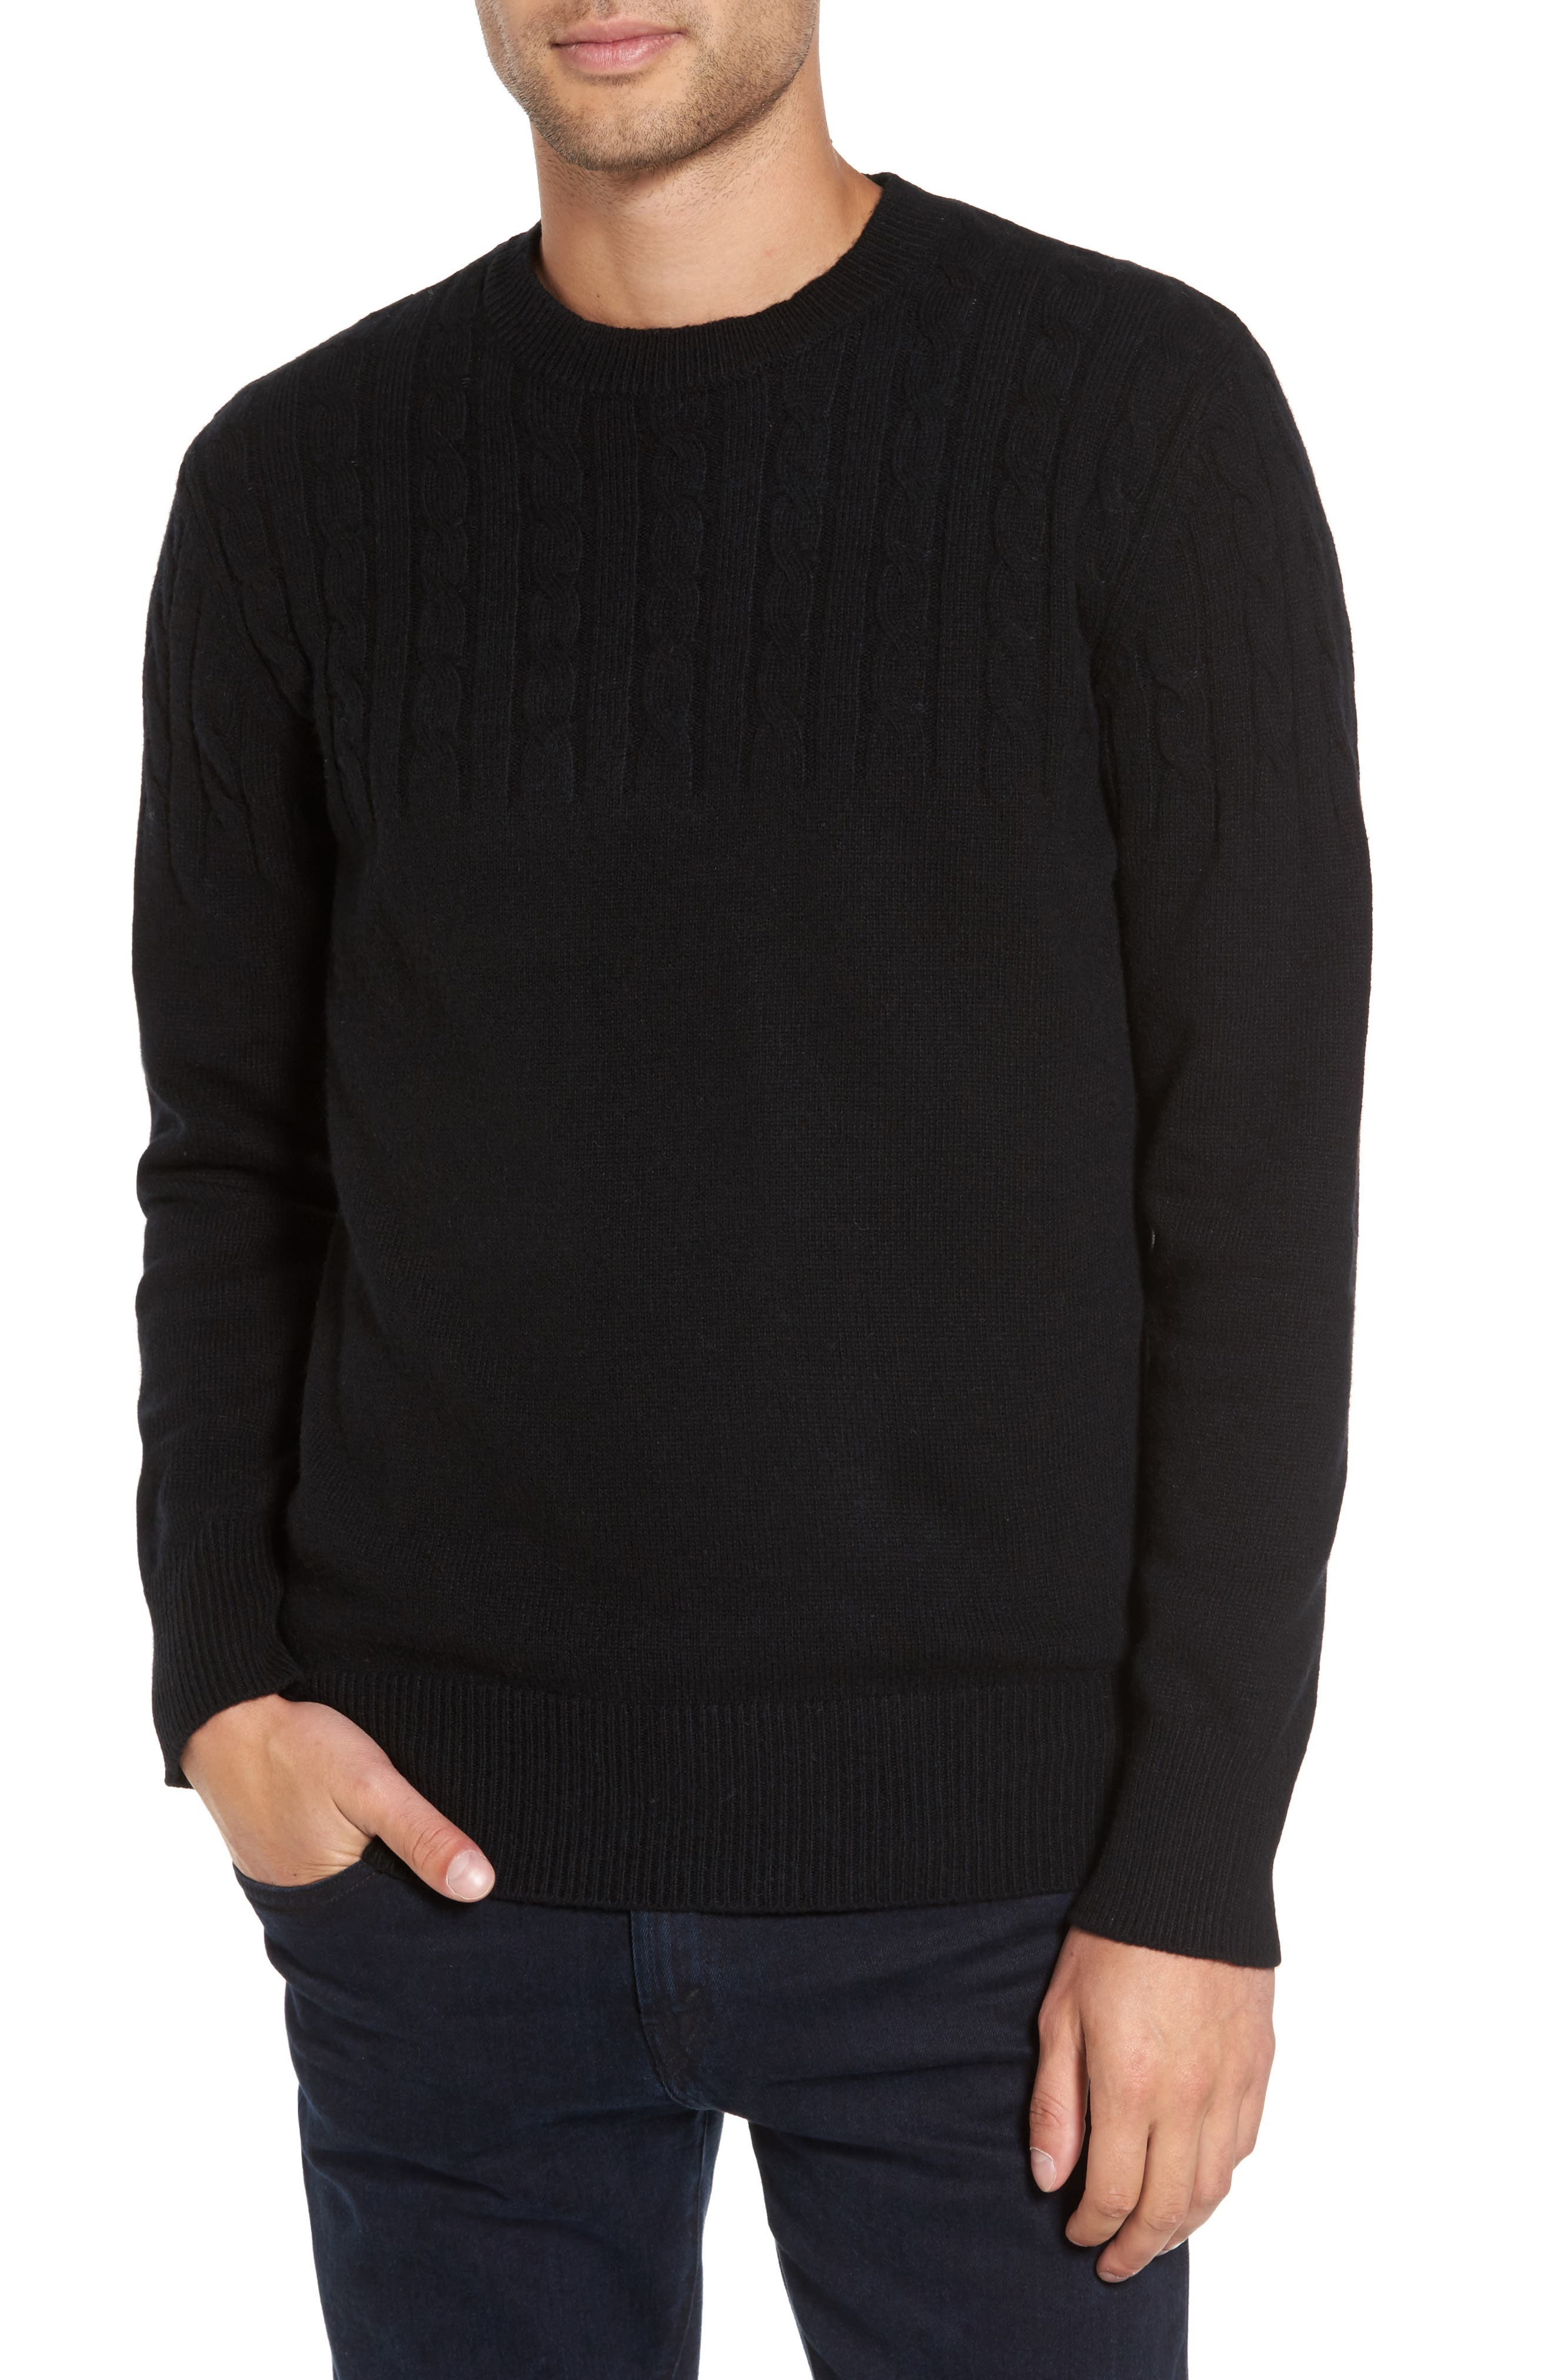 Wool Cable Knit Sweater,                         Main,                         color, Black